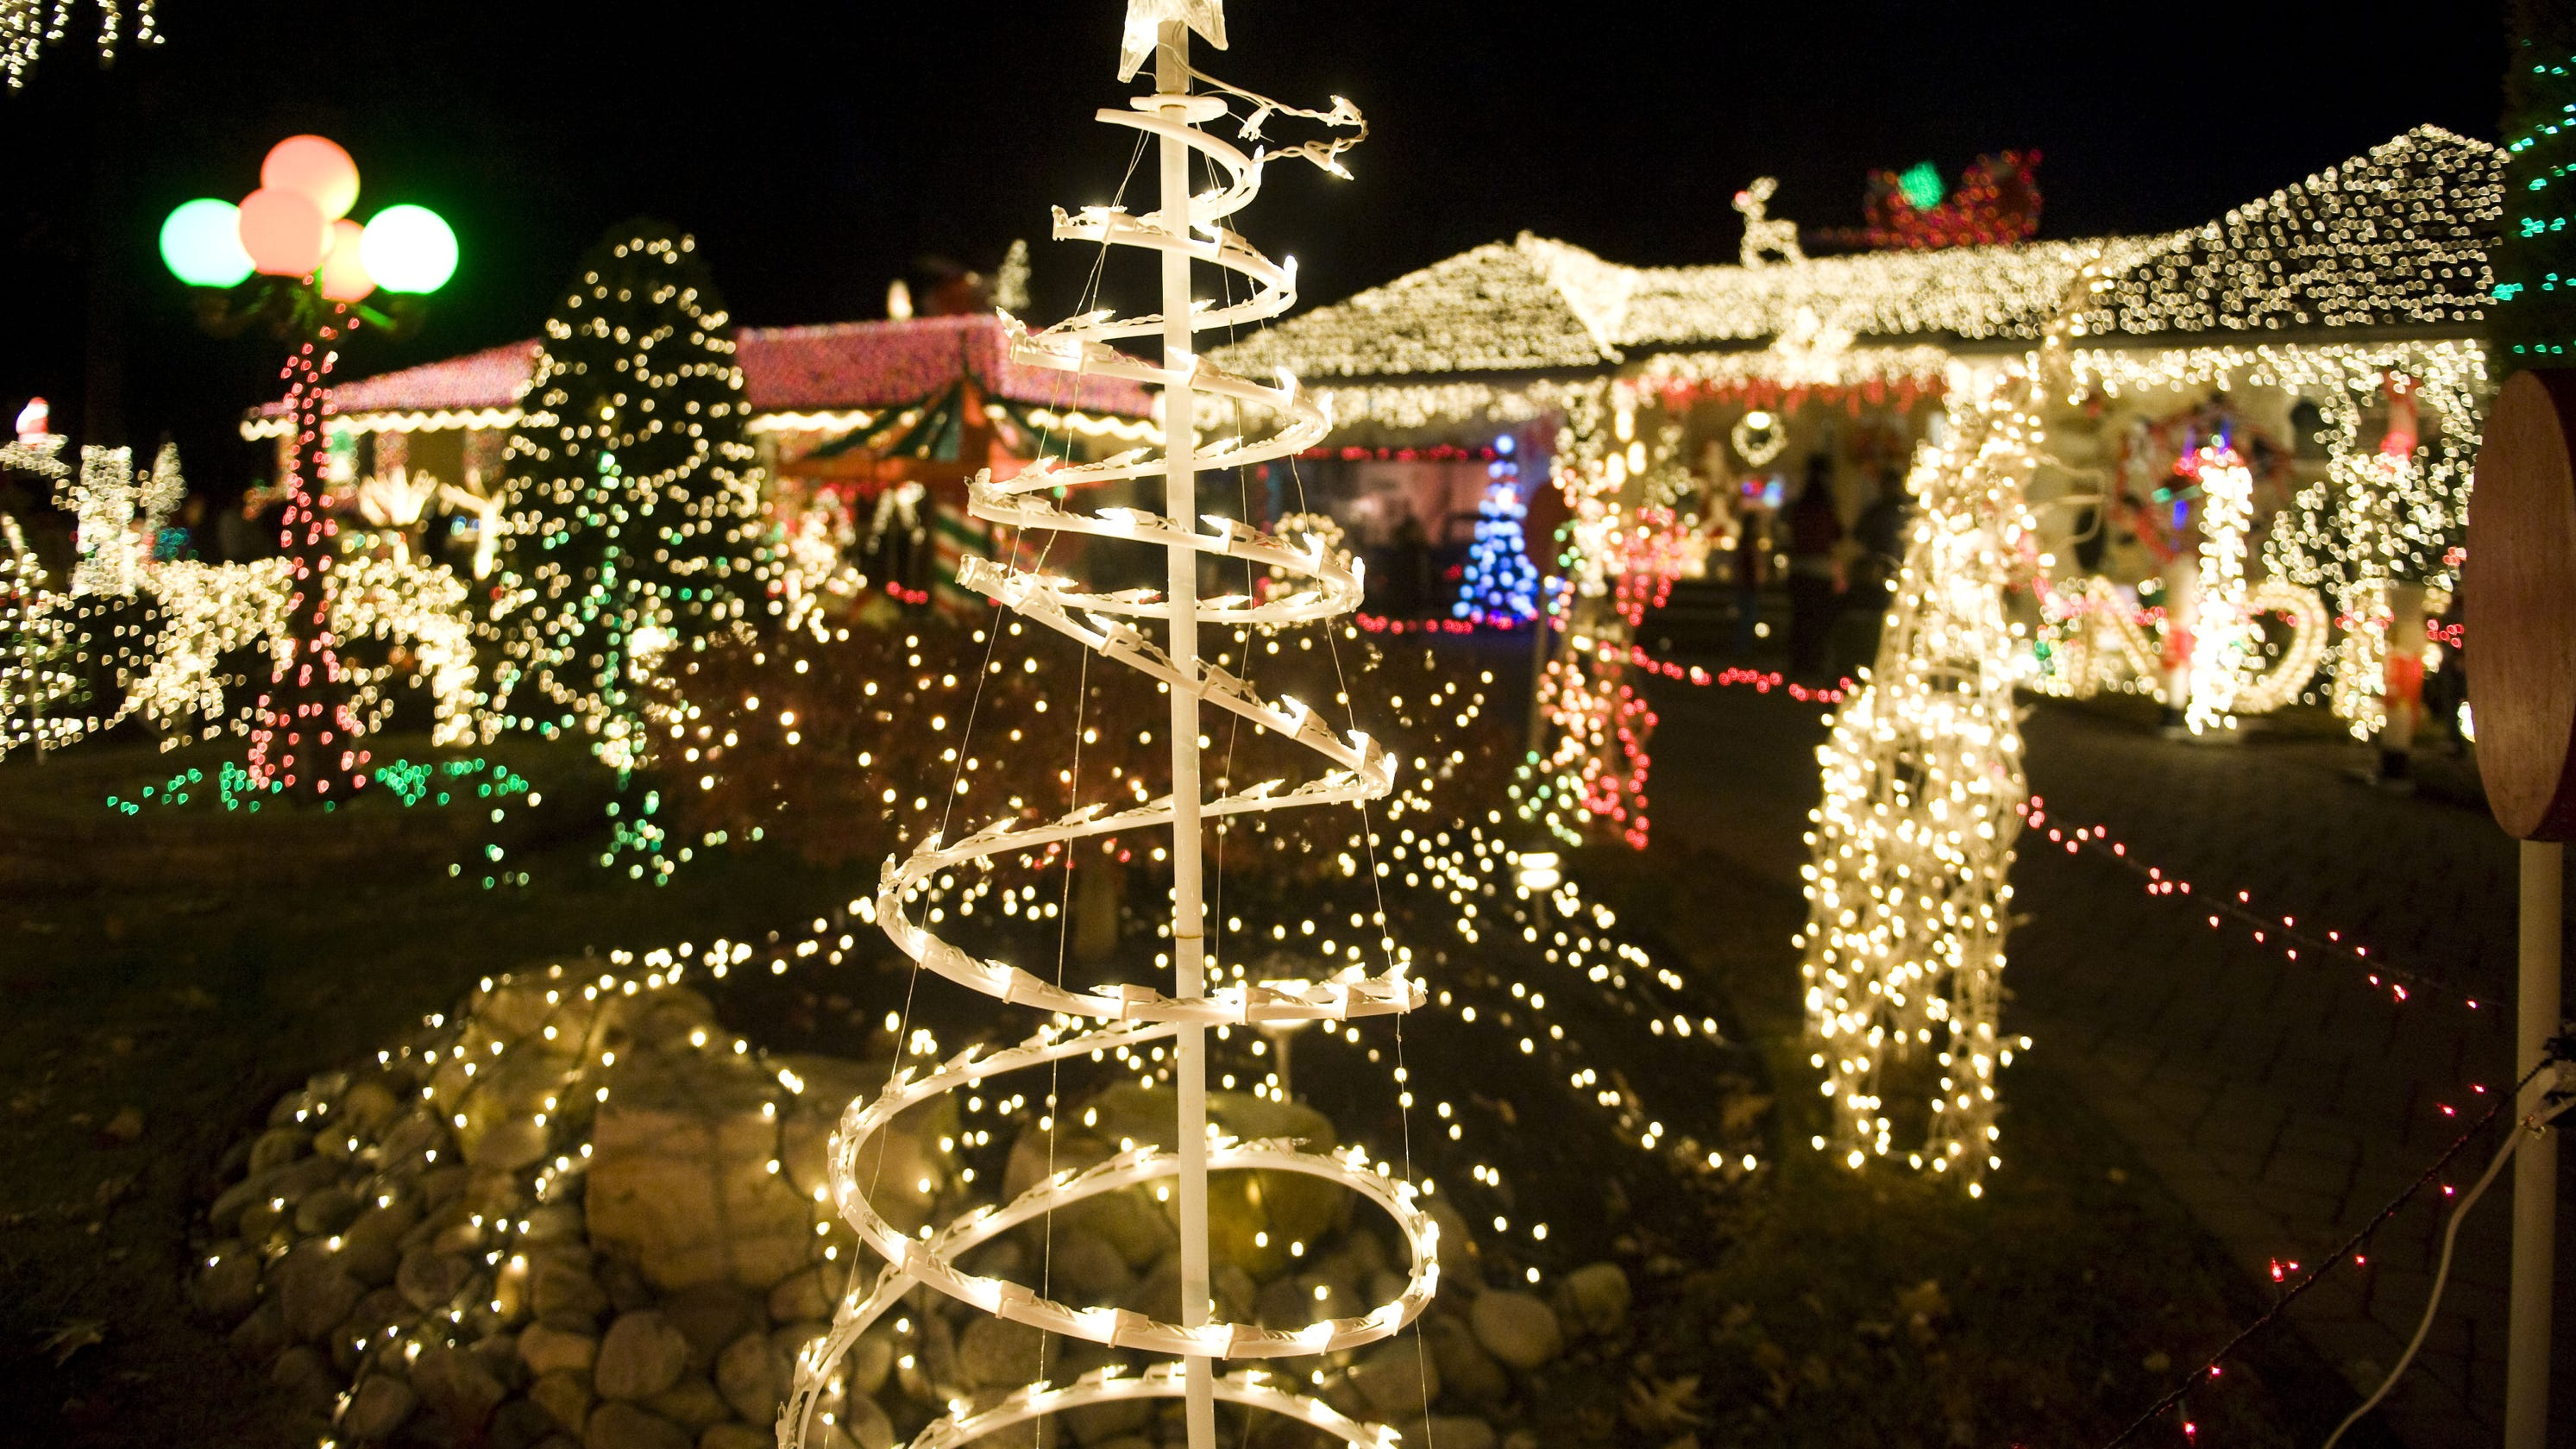 Christmas Light Display Near Me.Christmas Lights In Nj Beloved Lights Display In Cherry